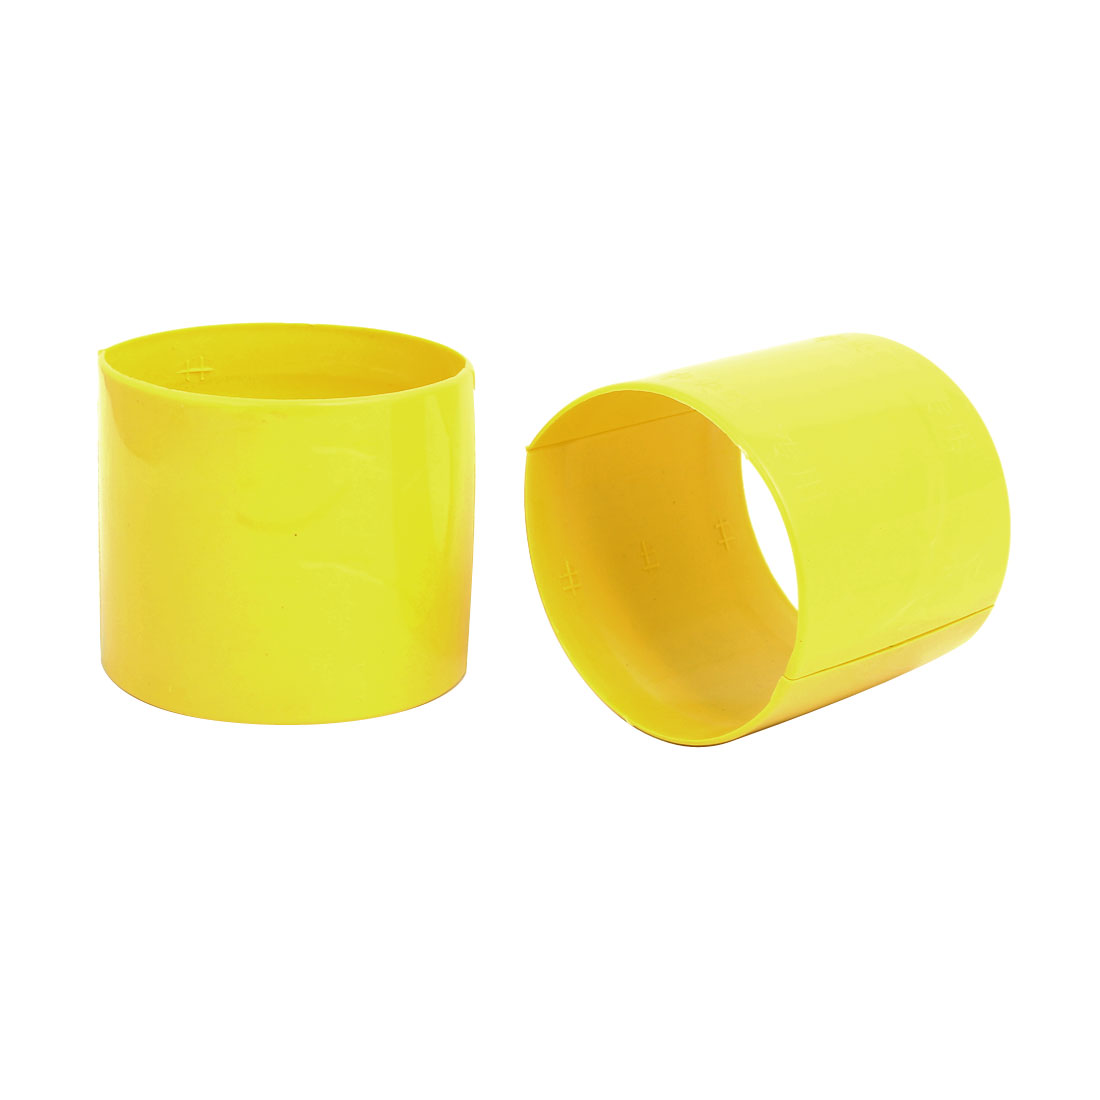 110mm Dia 2mm Thickness Central Air Conditioning Pipe Tube Clamp Yellow 2pcs